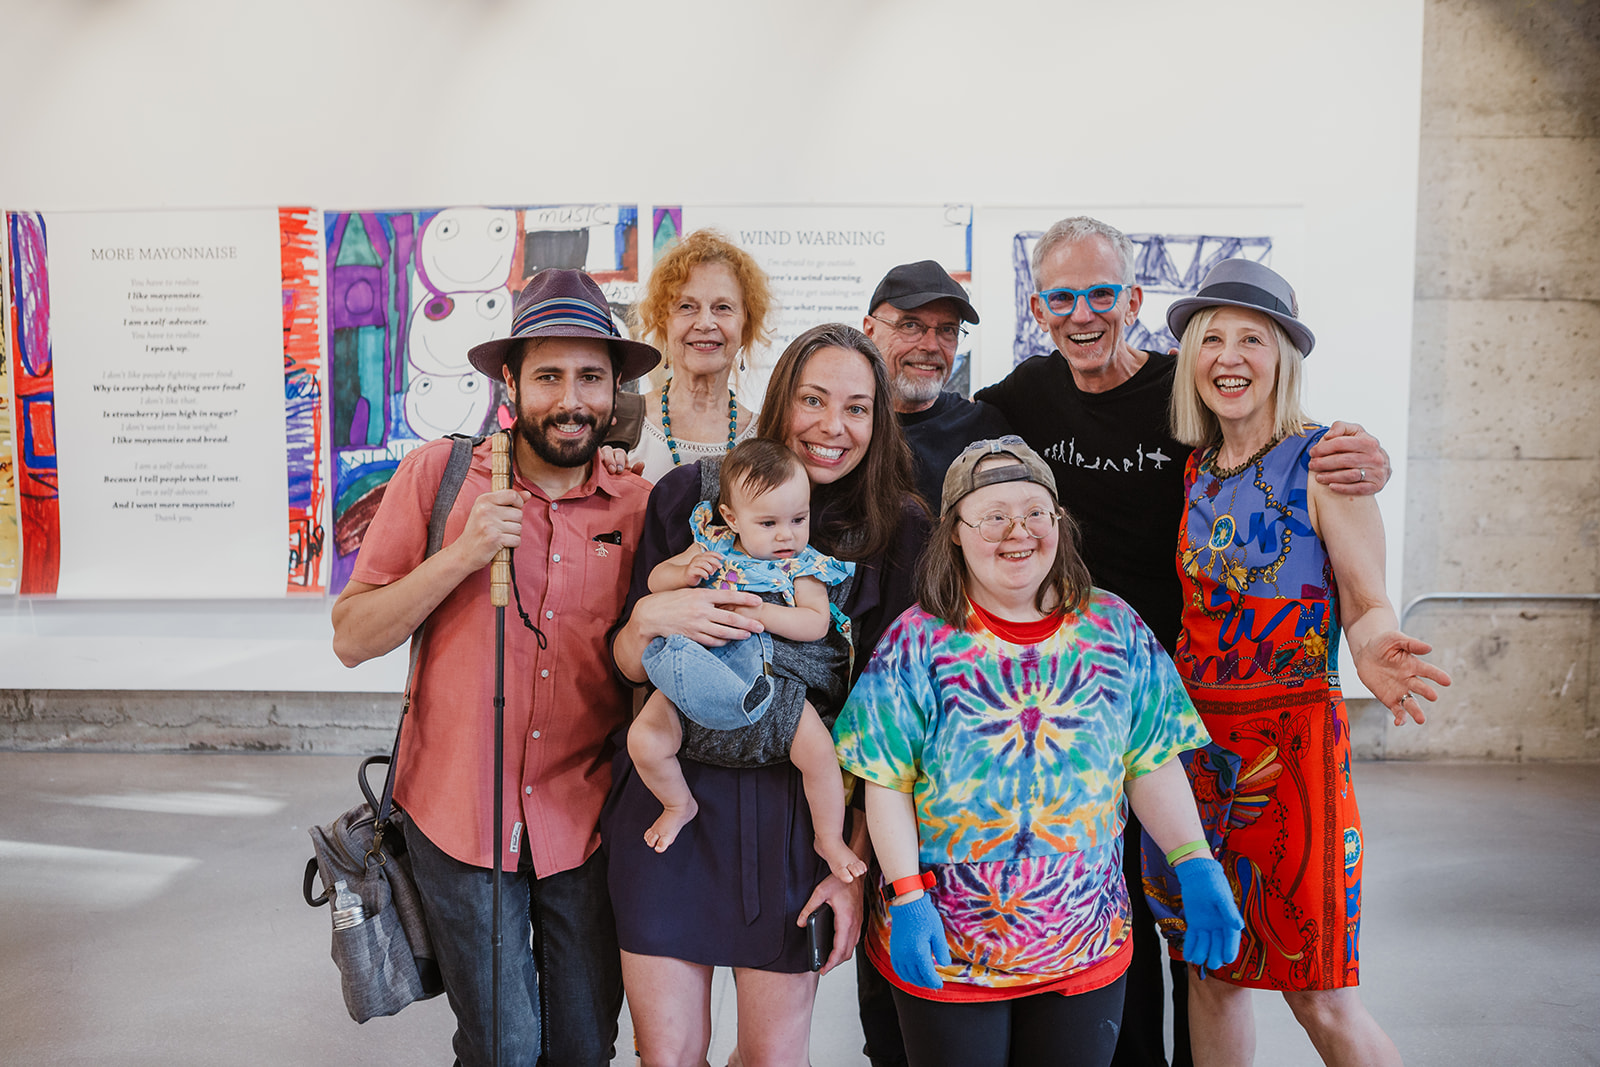 Group photo of Teresa Pocock with friends from Gallery Gachet, Franke James and Billiam James. Photo: This Is It Studios.